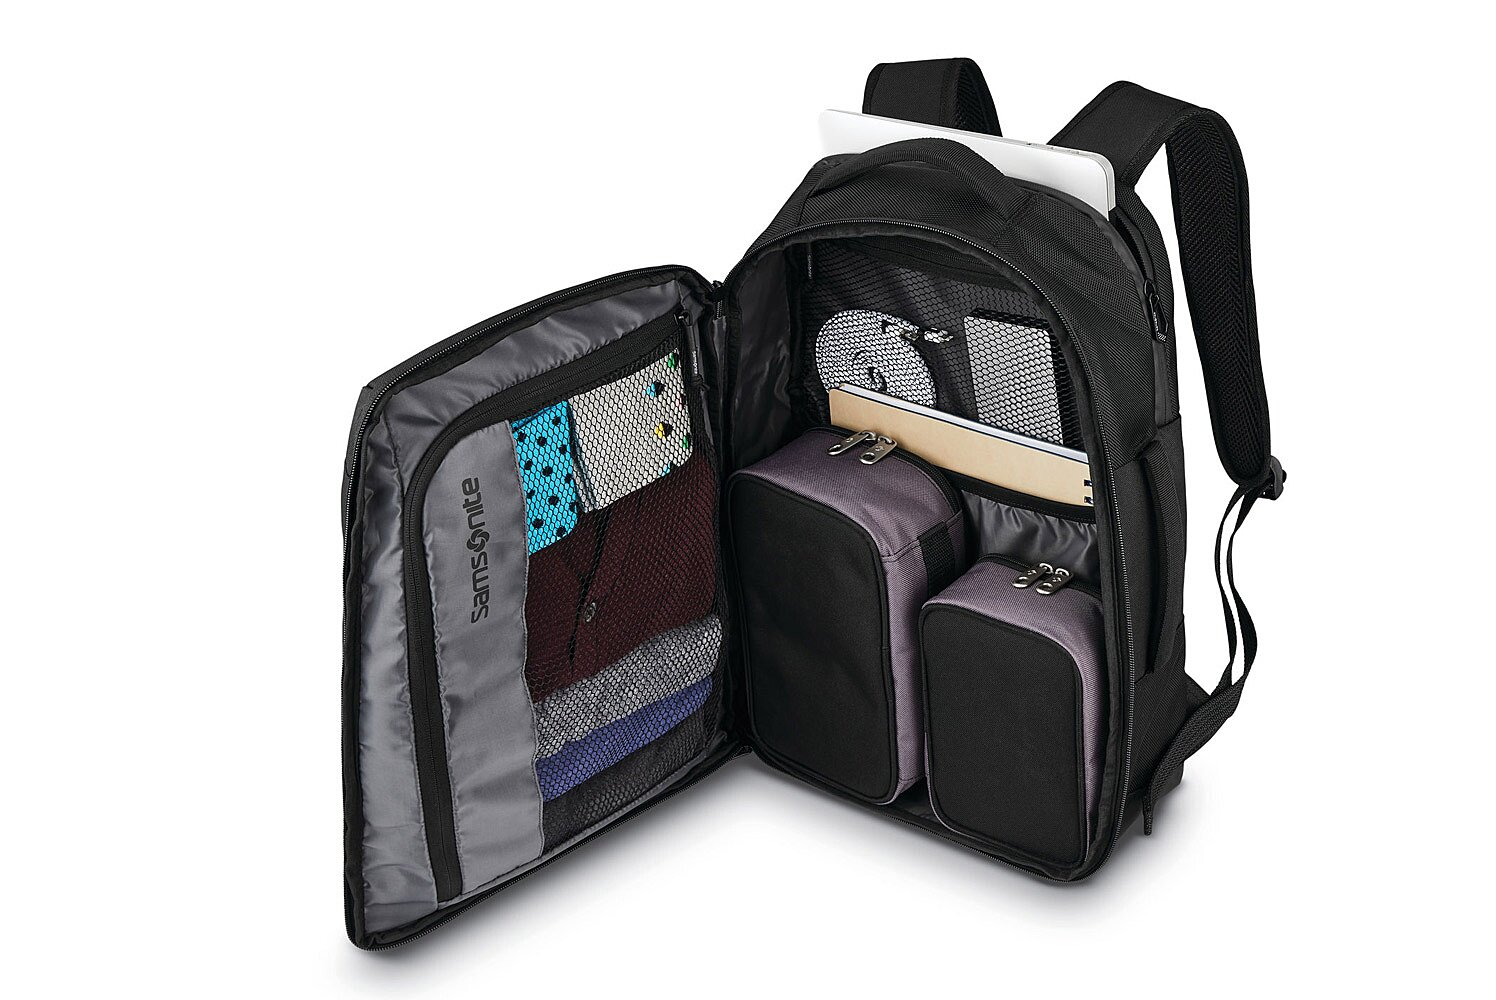 The Best Carry-on Travel Backpacks | Travel + Leisure